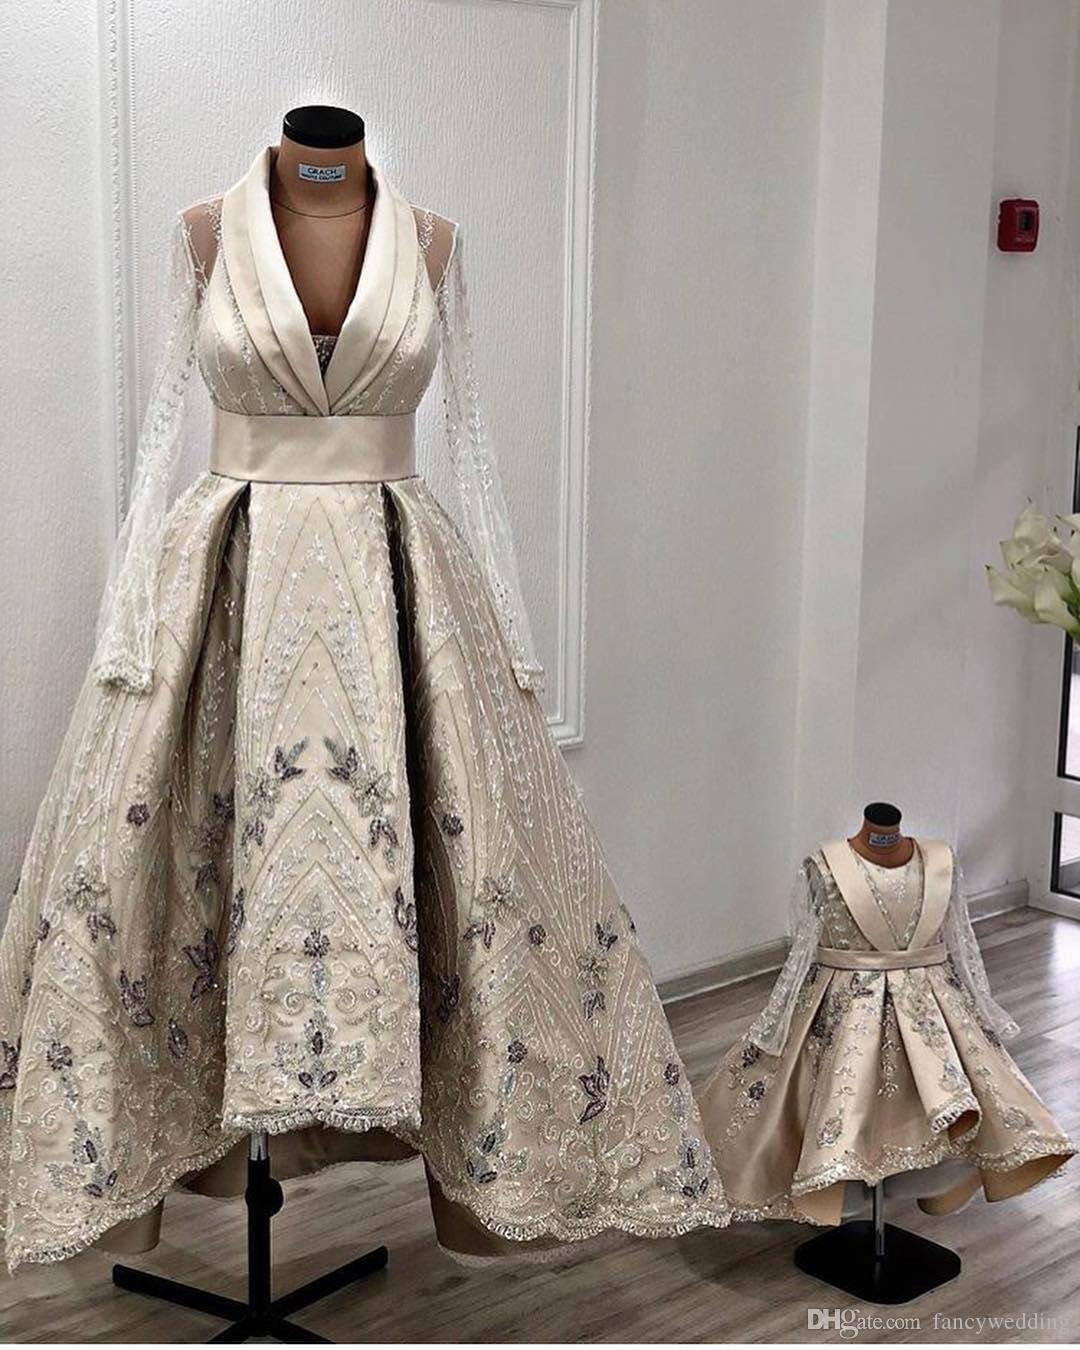 2019 African Luxurious Lace Beaded Mother Daughter Wedding Dresses Long Sleeves A-line Bridal Dresses Sexy Vintage Wedding Gowns